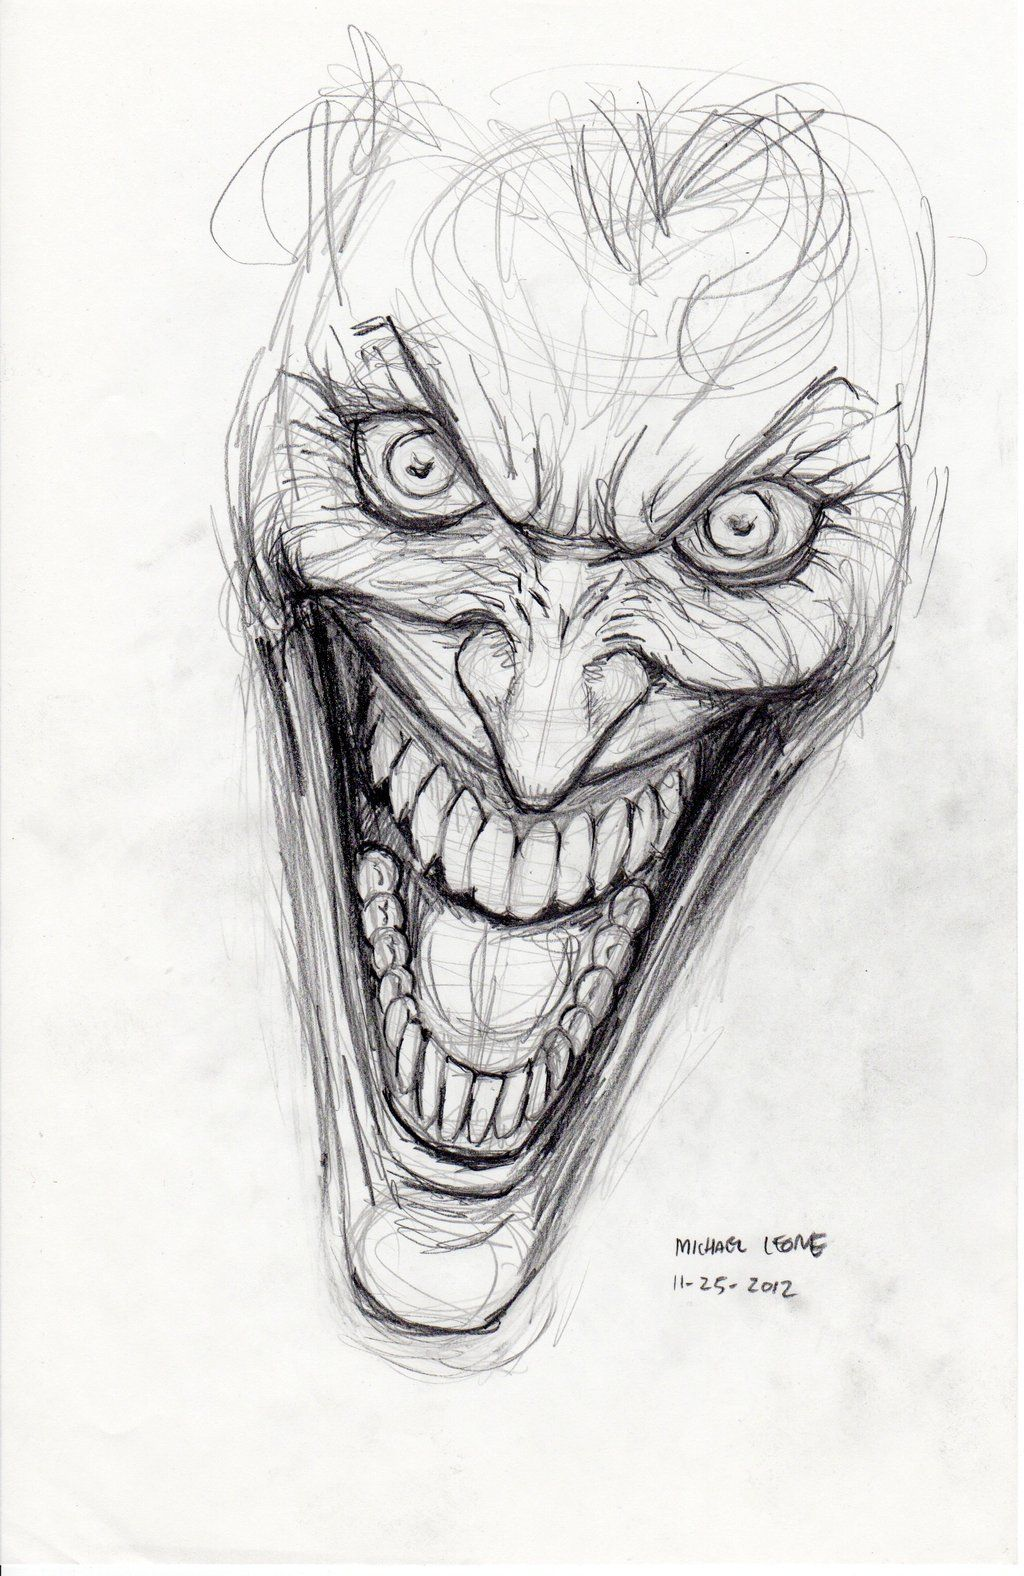 The joker joker sketch joker drawings drawings in pencil drawing sketches cool